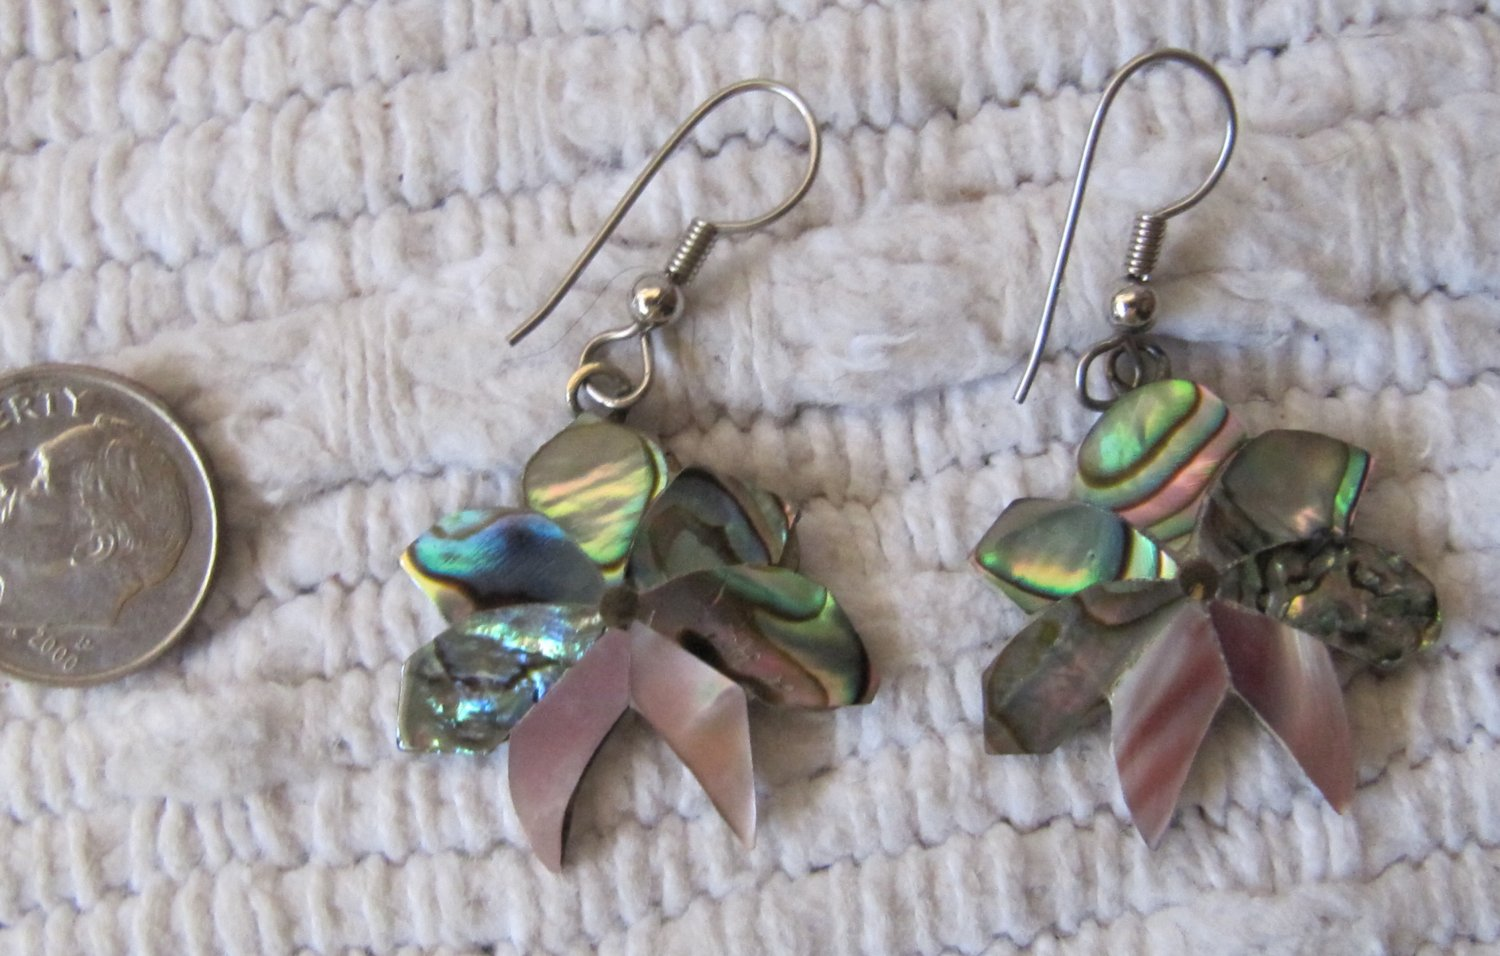 Vintage Pierced Earrings Genuine Mother of Pearl MOP Iridescent Mosaic Floral Design Dangle 1 Inch